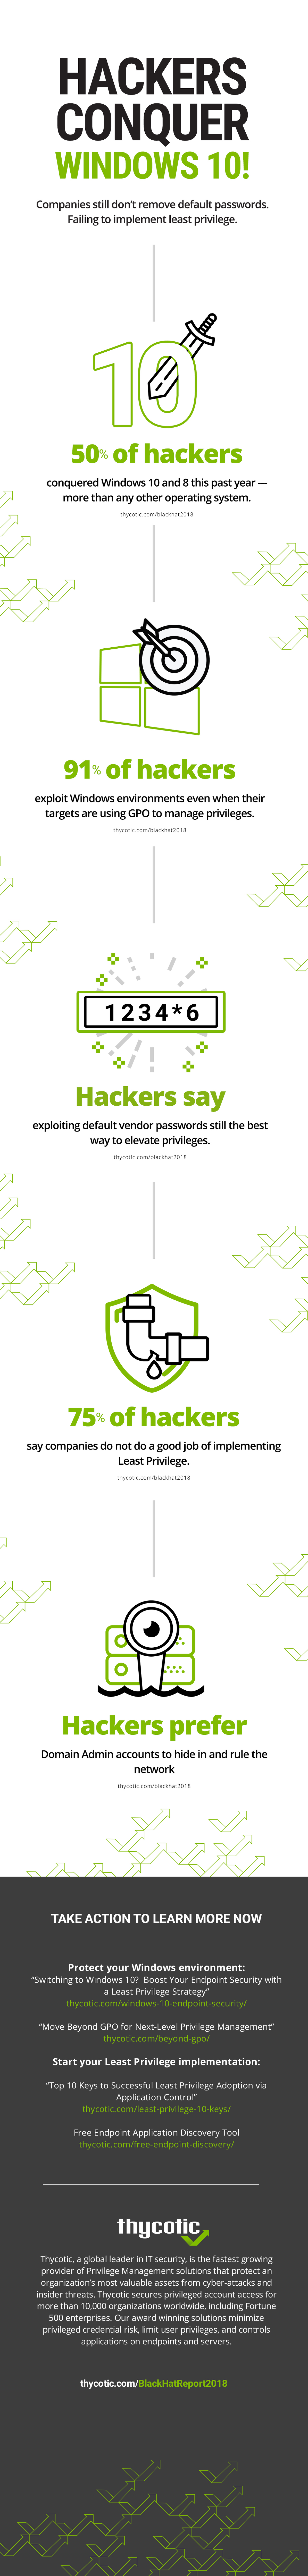 Infographic | Hackers Conquer Windows 10